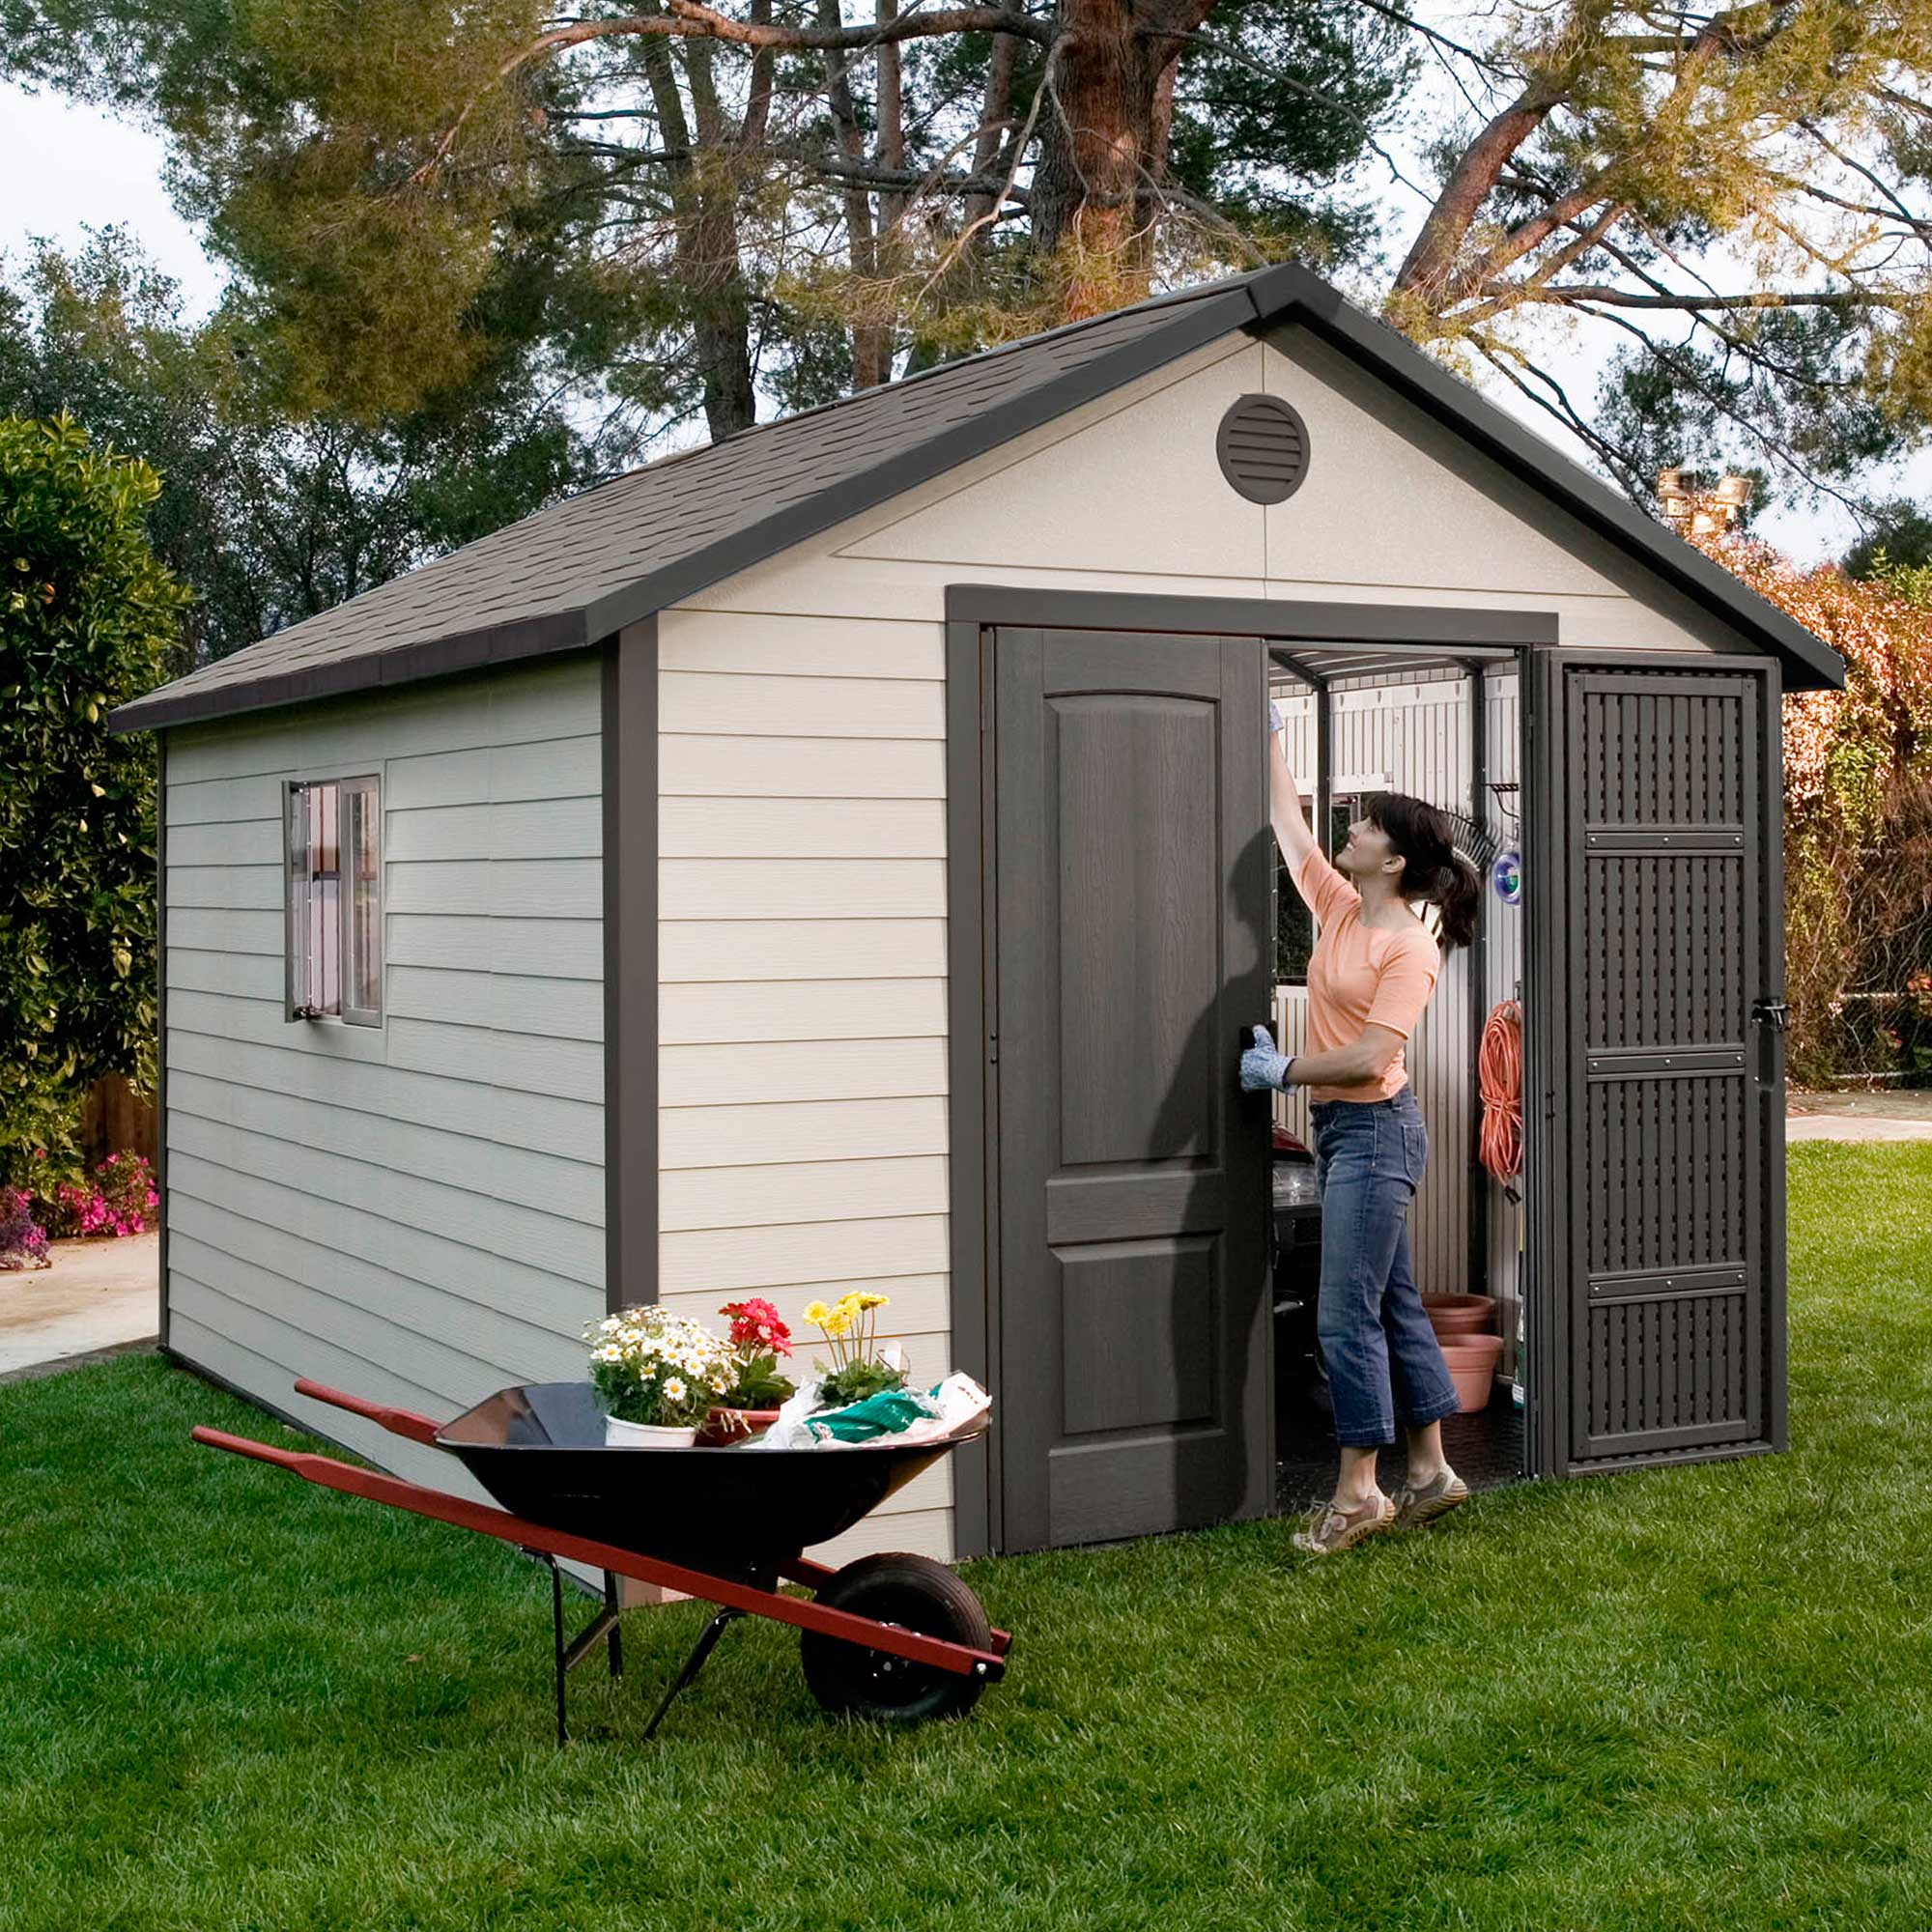 Image of 11' x 26' Lifetime Heavy Duty Plastic Shed (3.16m x 7.72m)